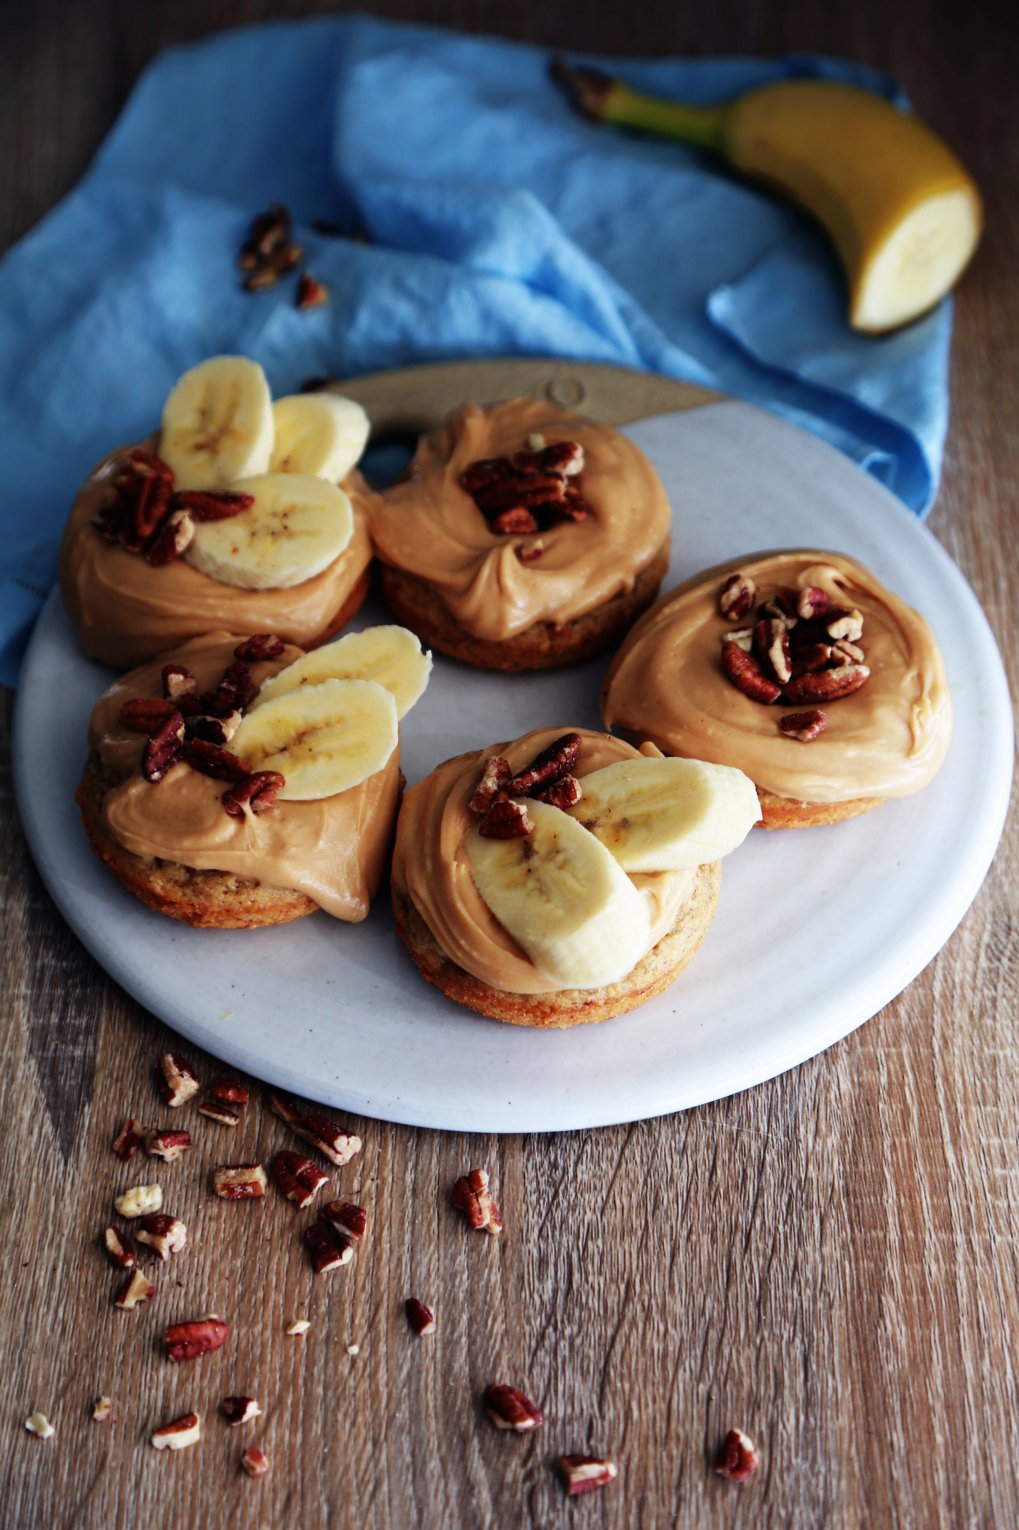 GLuten-Free & Vegan Banana bRead Doughnuts with Peanut BUtter frosting